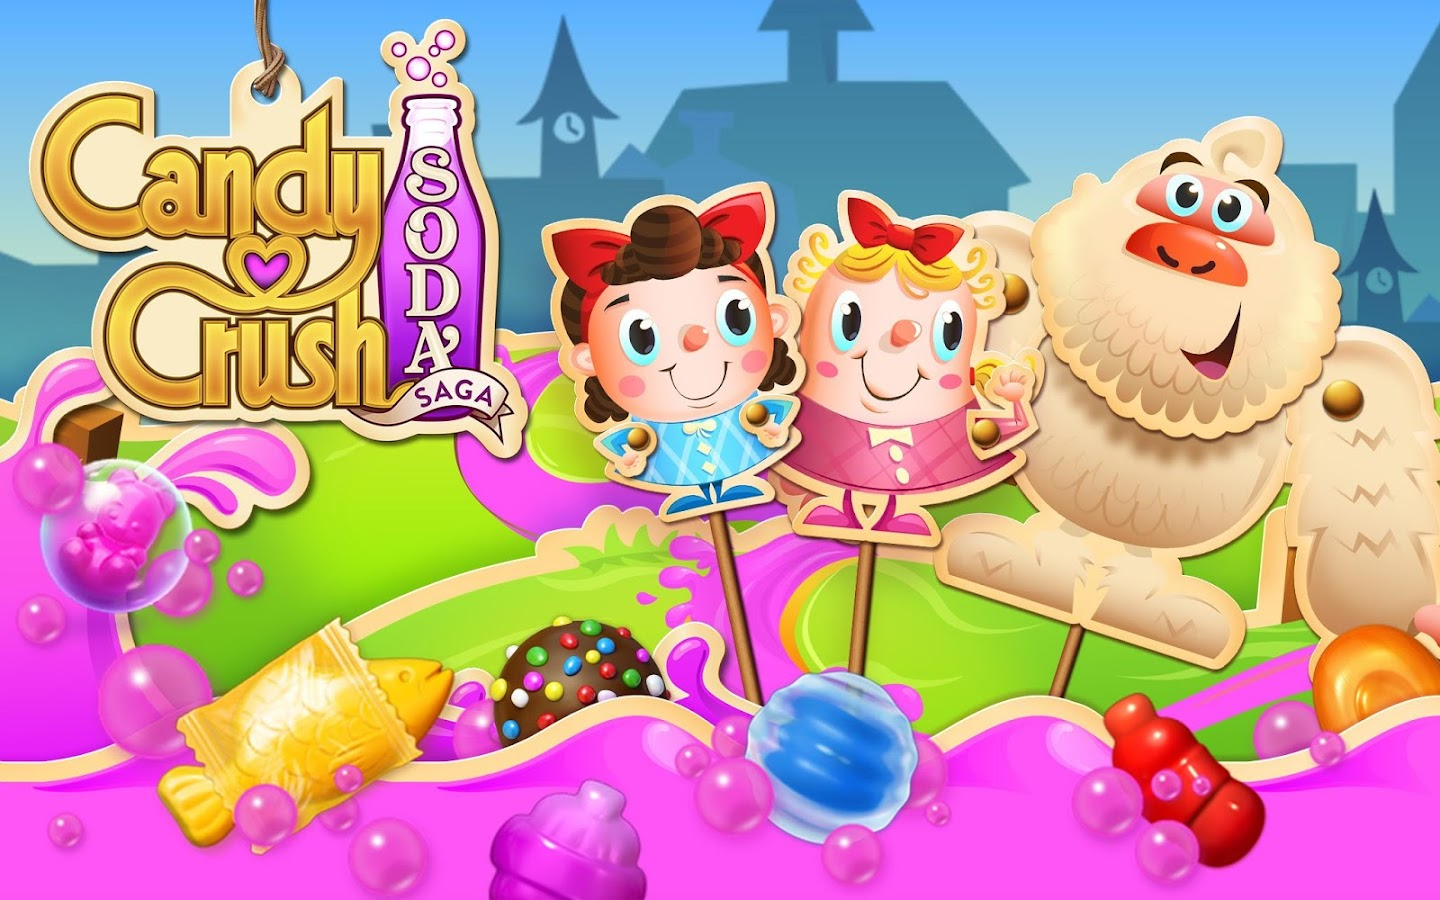 http://full-android-apk.blogspot.com/2015/06/candy-crush-soda-saga-v1456-apk-mod.html